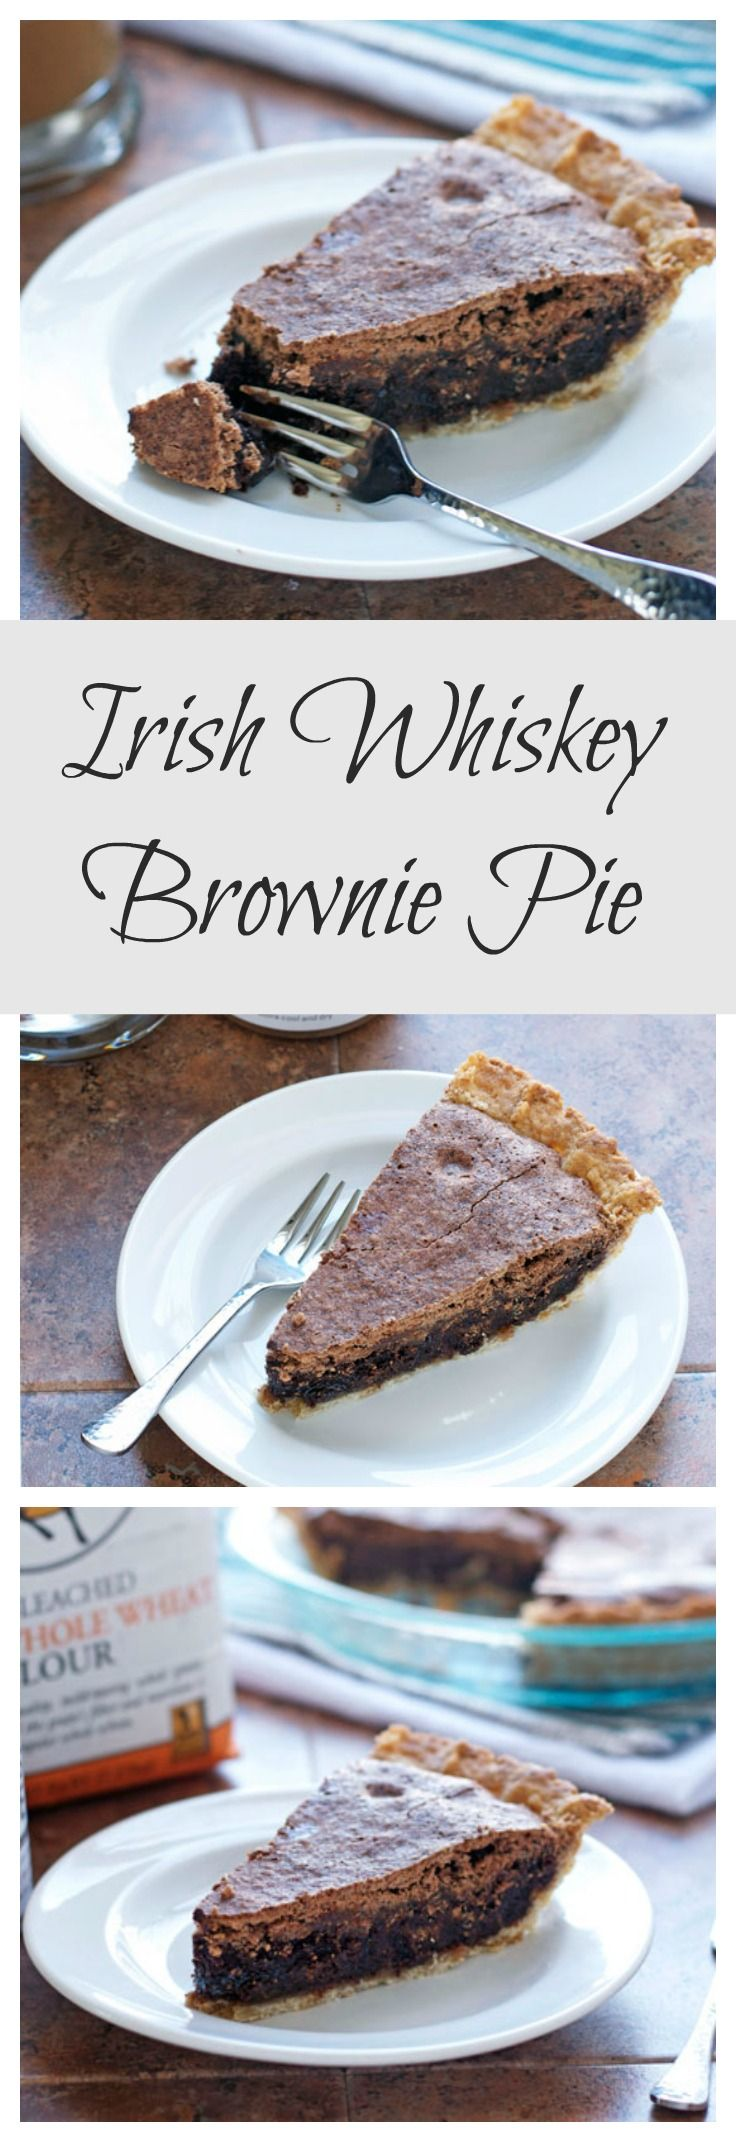 Irish Whiskey Brownie Pie from Well Plated by Erin, perfect for St. Patrick's Day!